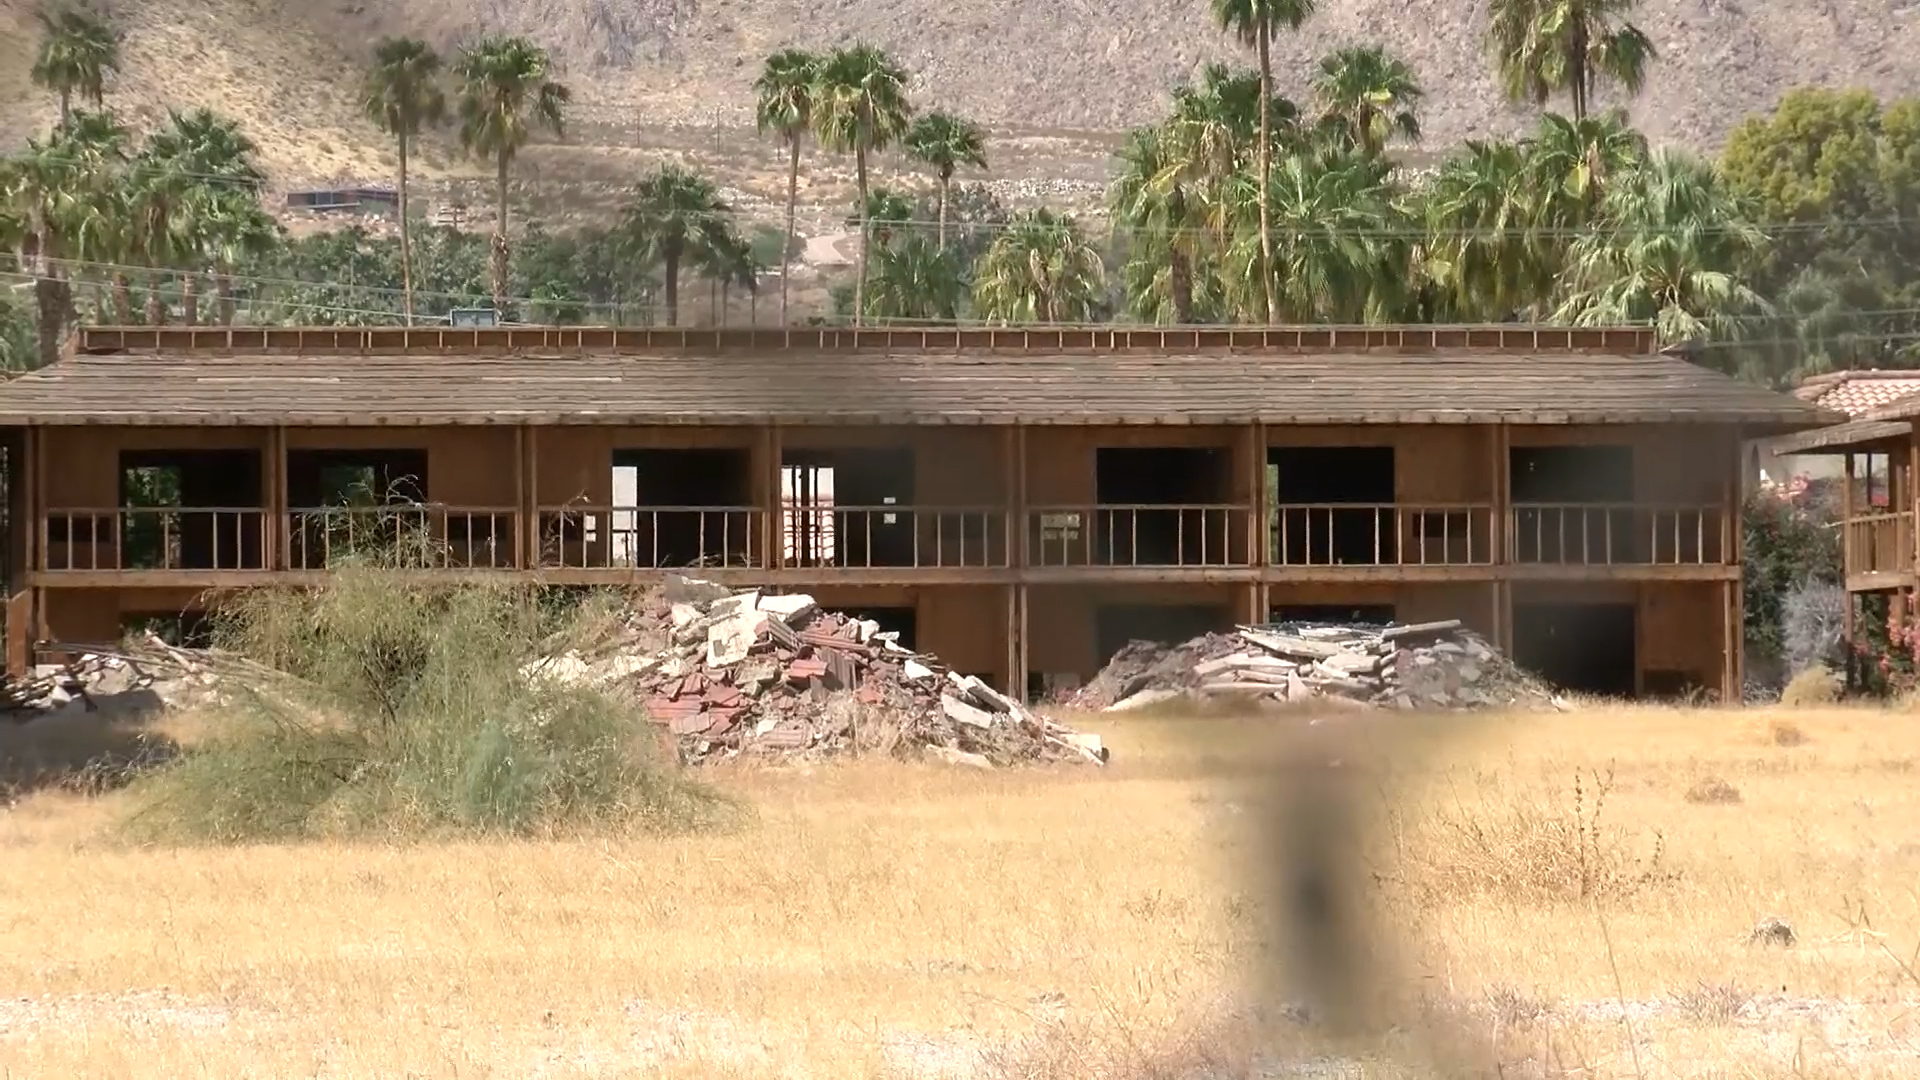 Incomplete Tova Hotel project in downtown Palm Springs could be torn down - KESQ